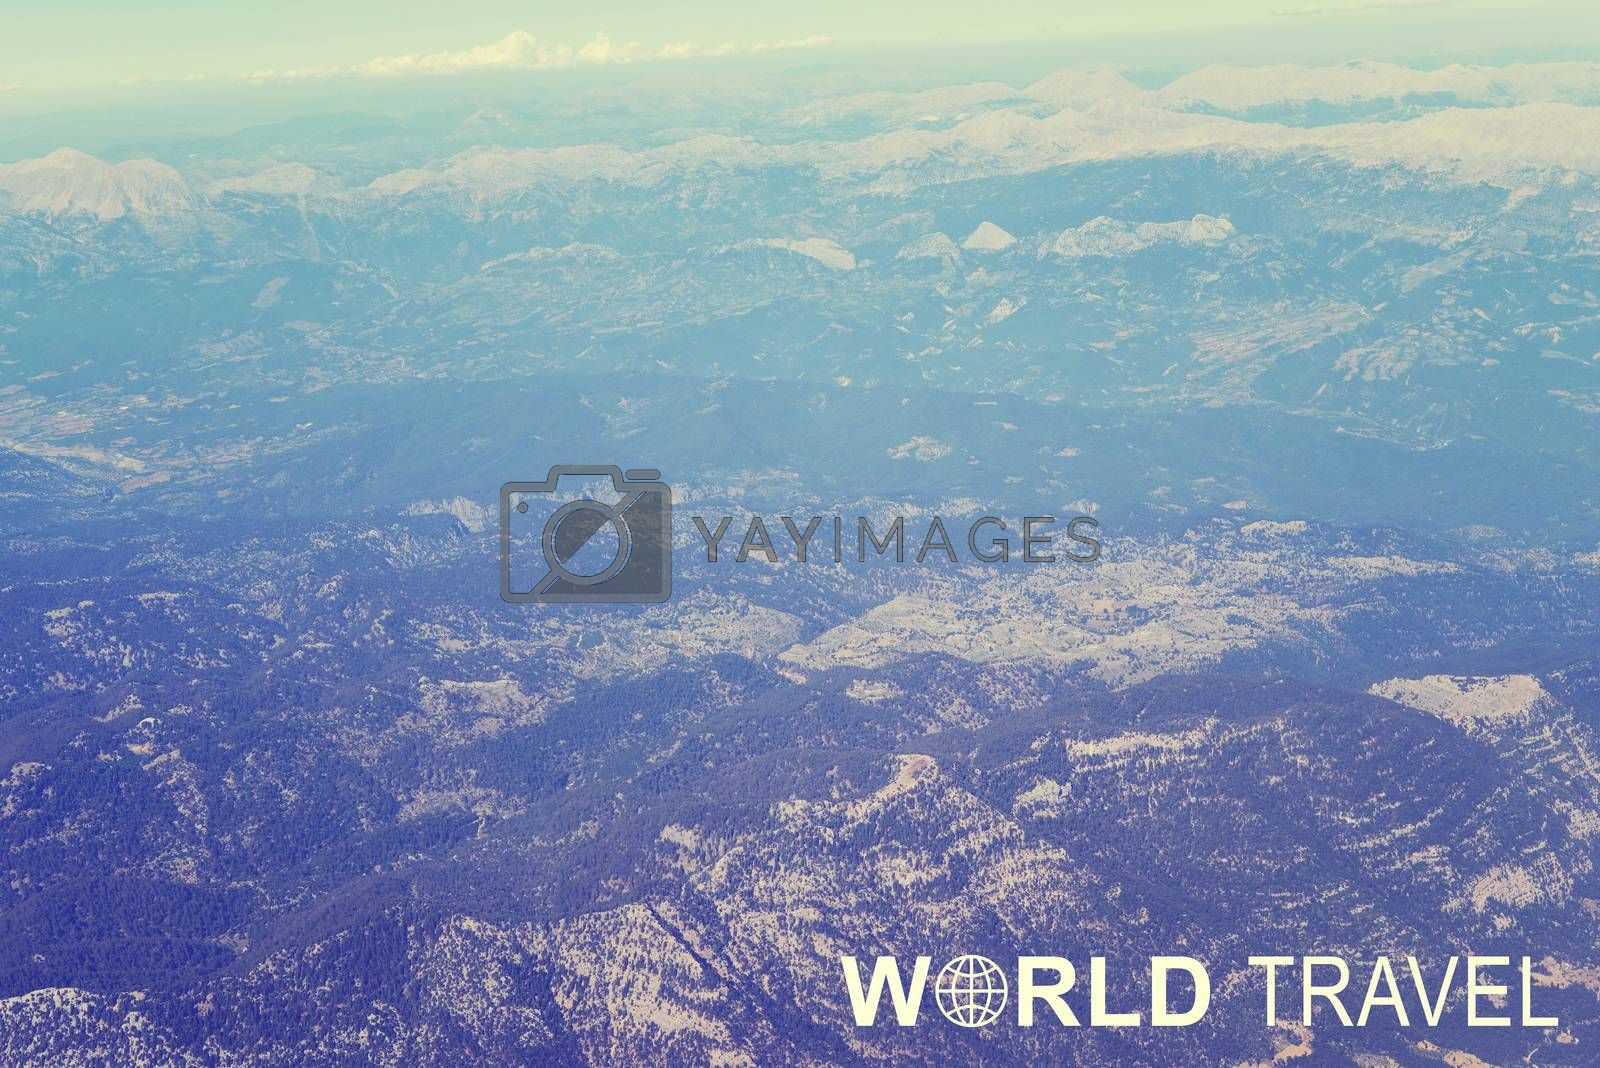 World Travel header by cherezoff